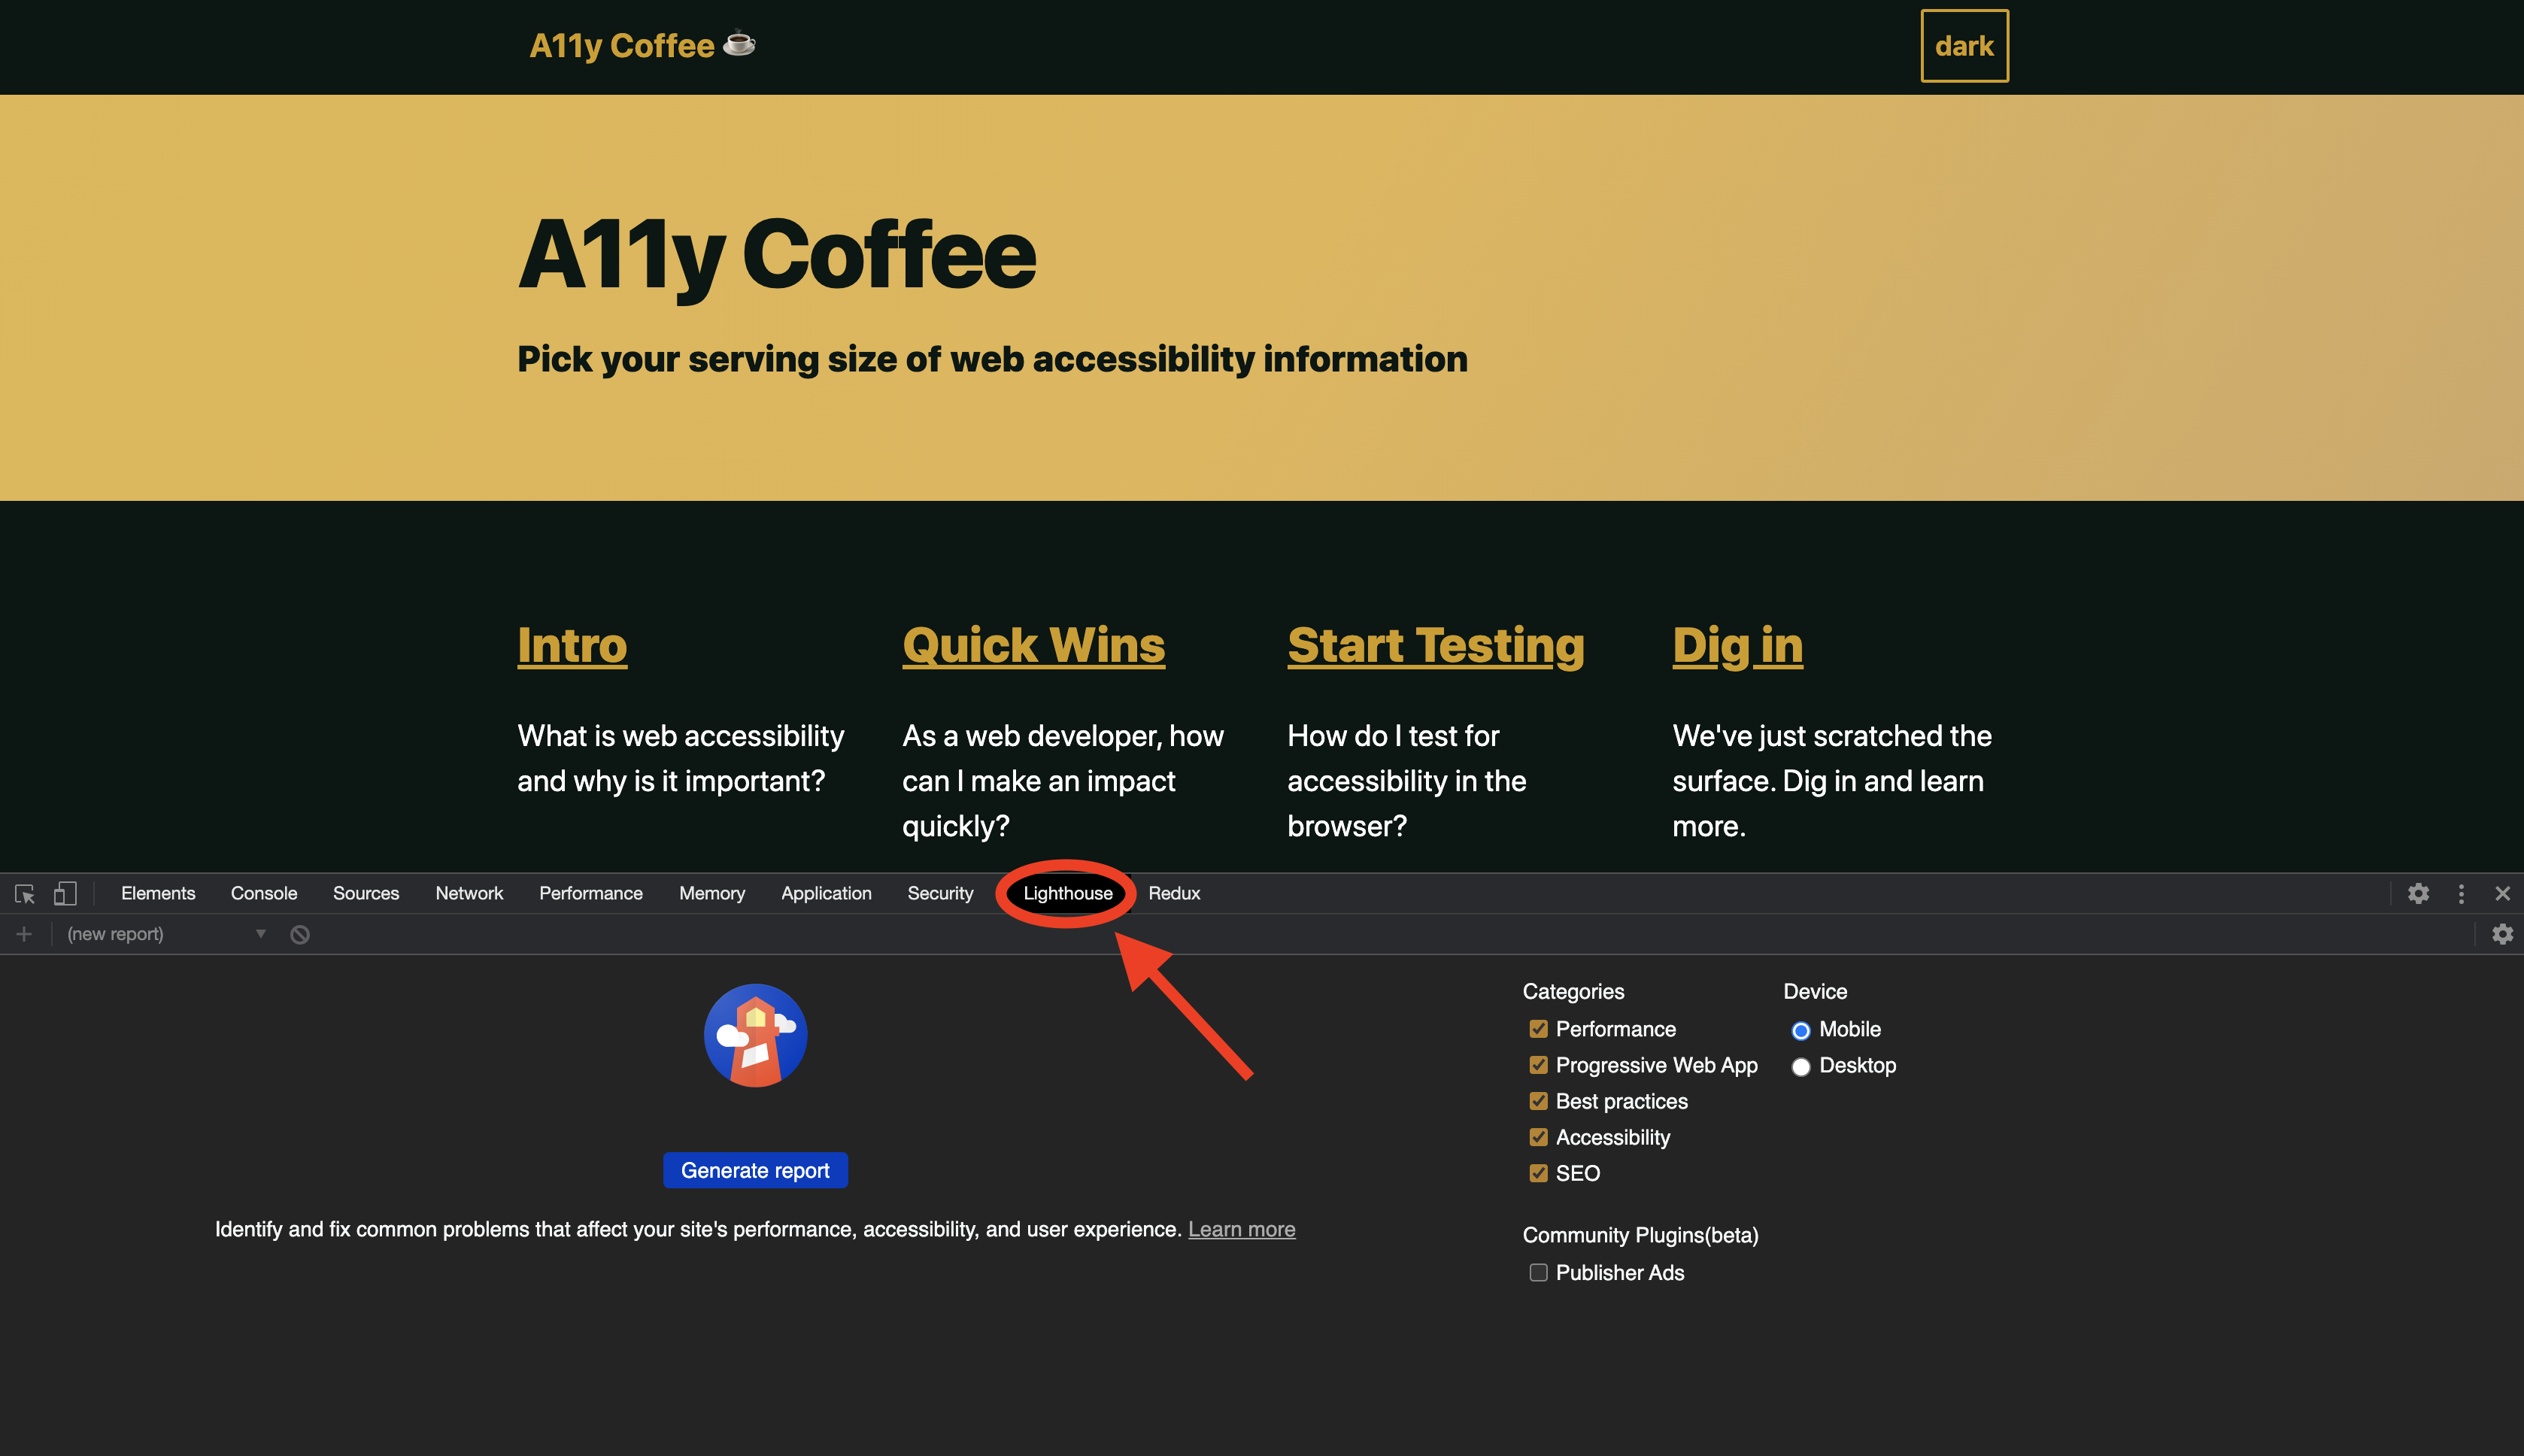 a11y.coffee, a collection of information and resources about web accessibility, with Chrome DevTools open